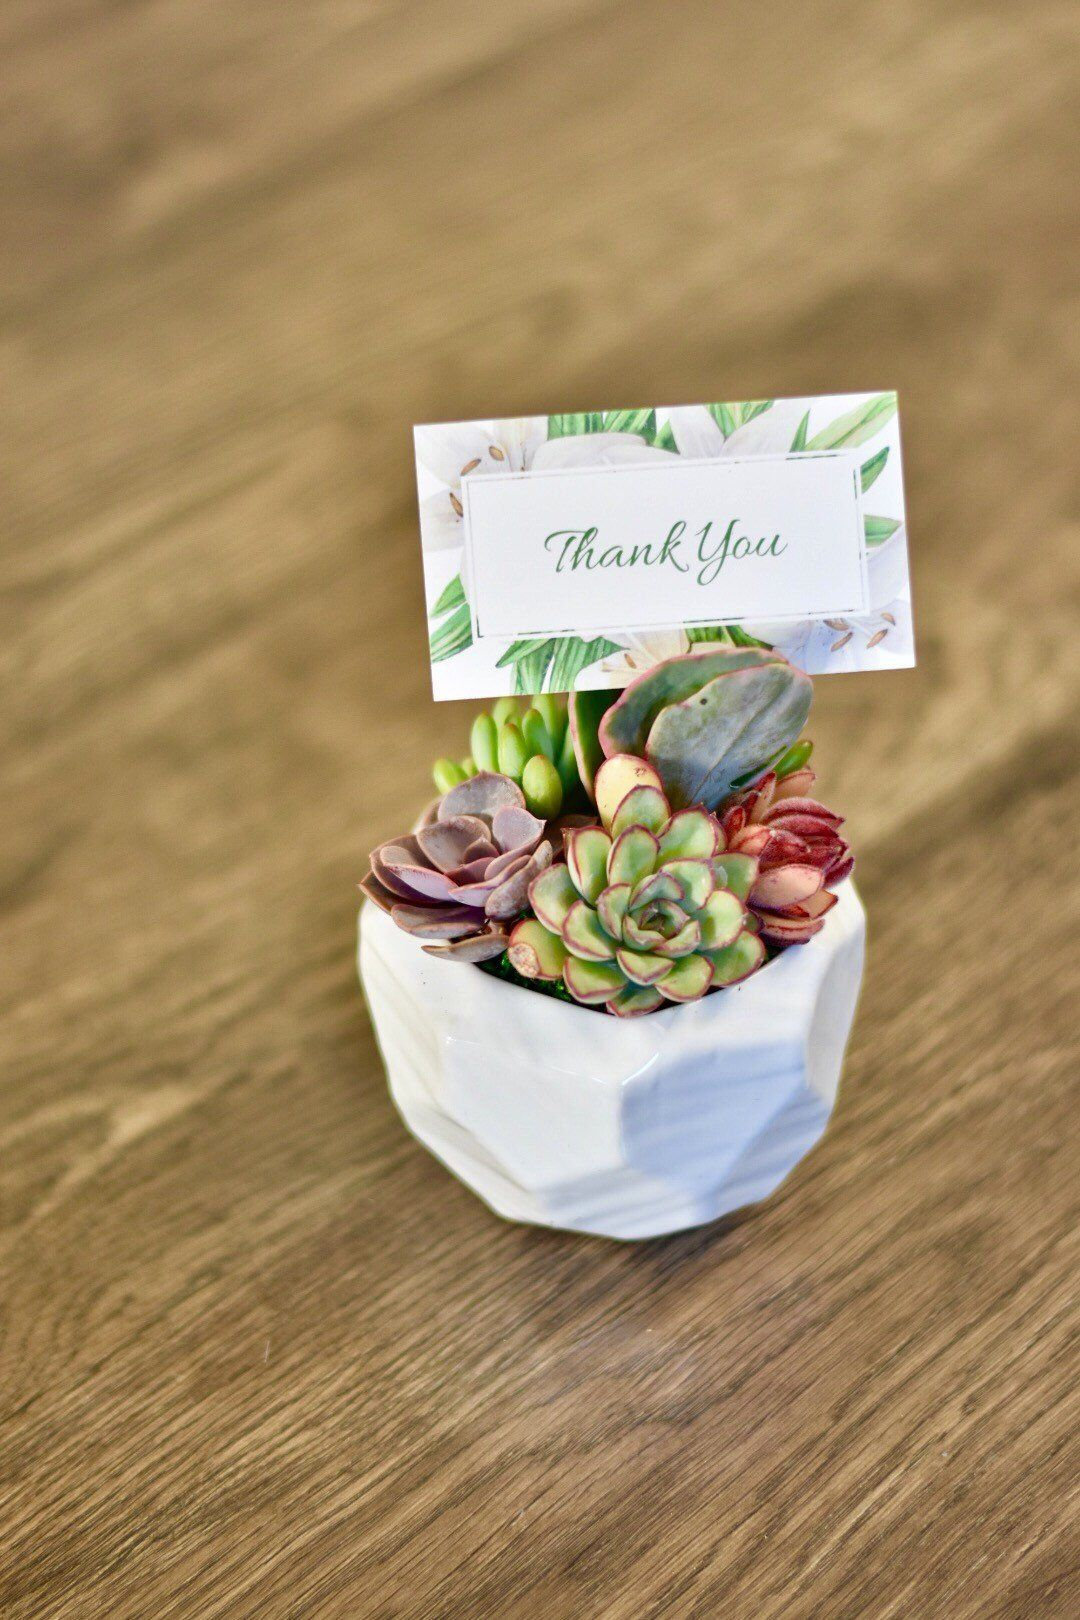 Excited To Share This Item From My Etsy Shop Succulent Gift For Office Succulents Sympathy Friend Birthday Teacher Thank You